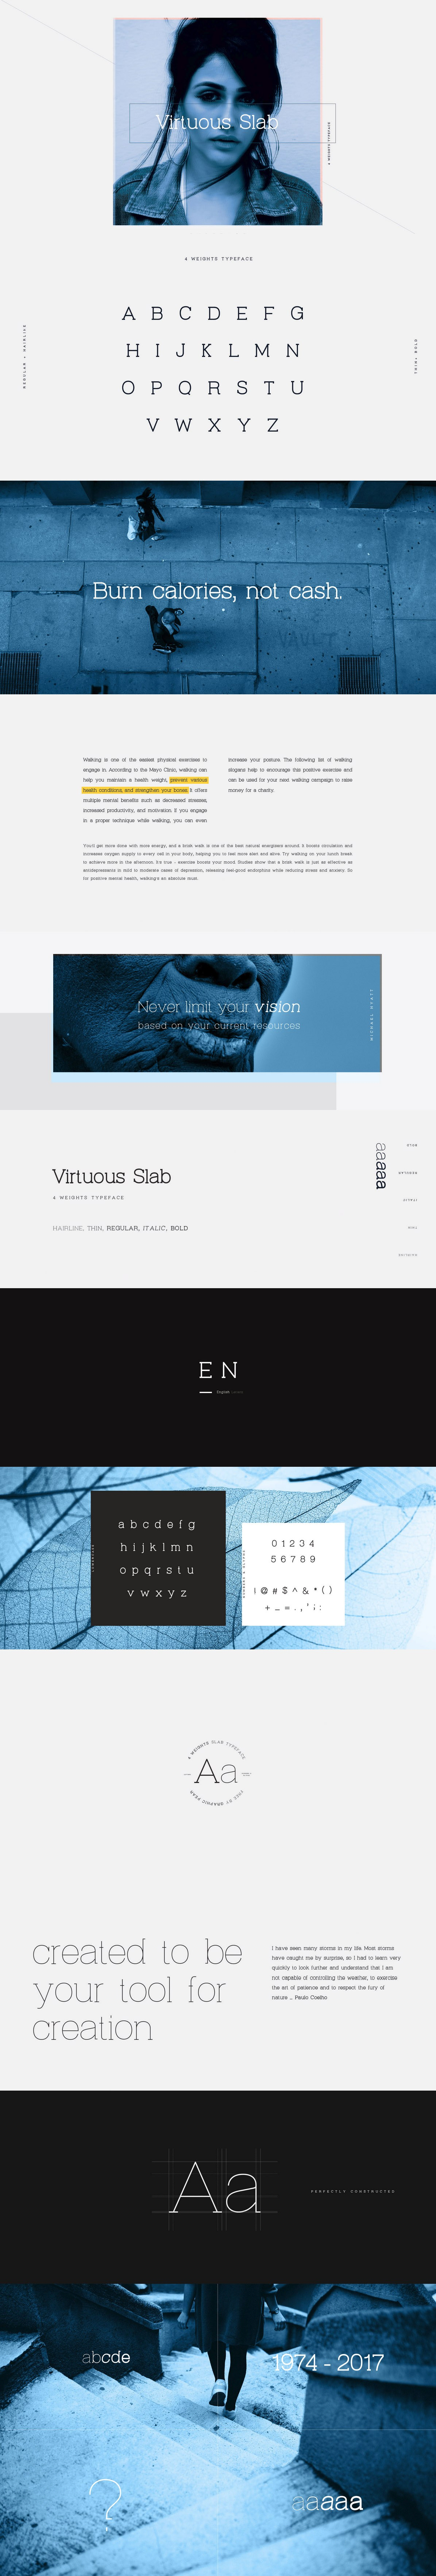 https://fontclarity.com/wp-content/uploads/2019/09/virtuous-slab-download-0.jpg Free Download